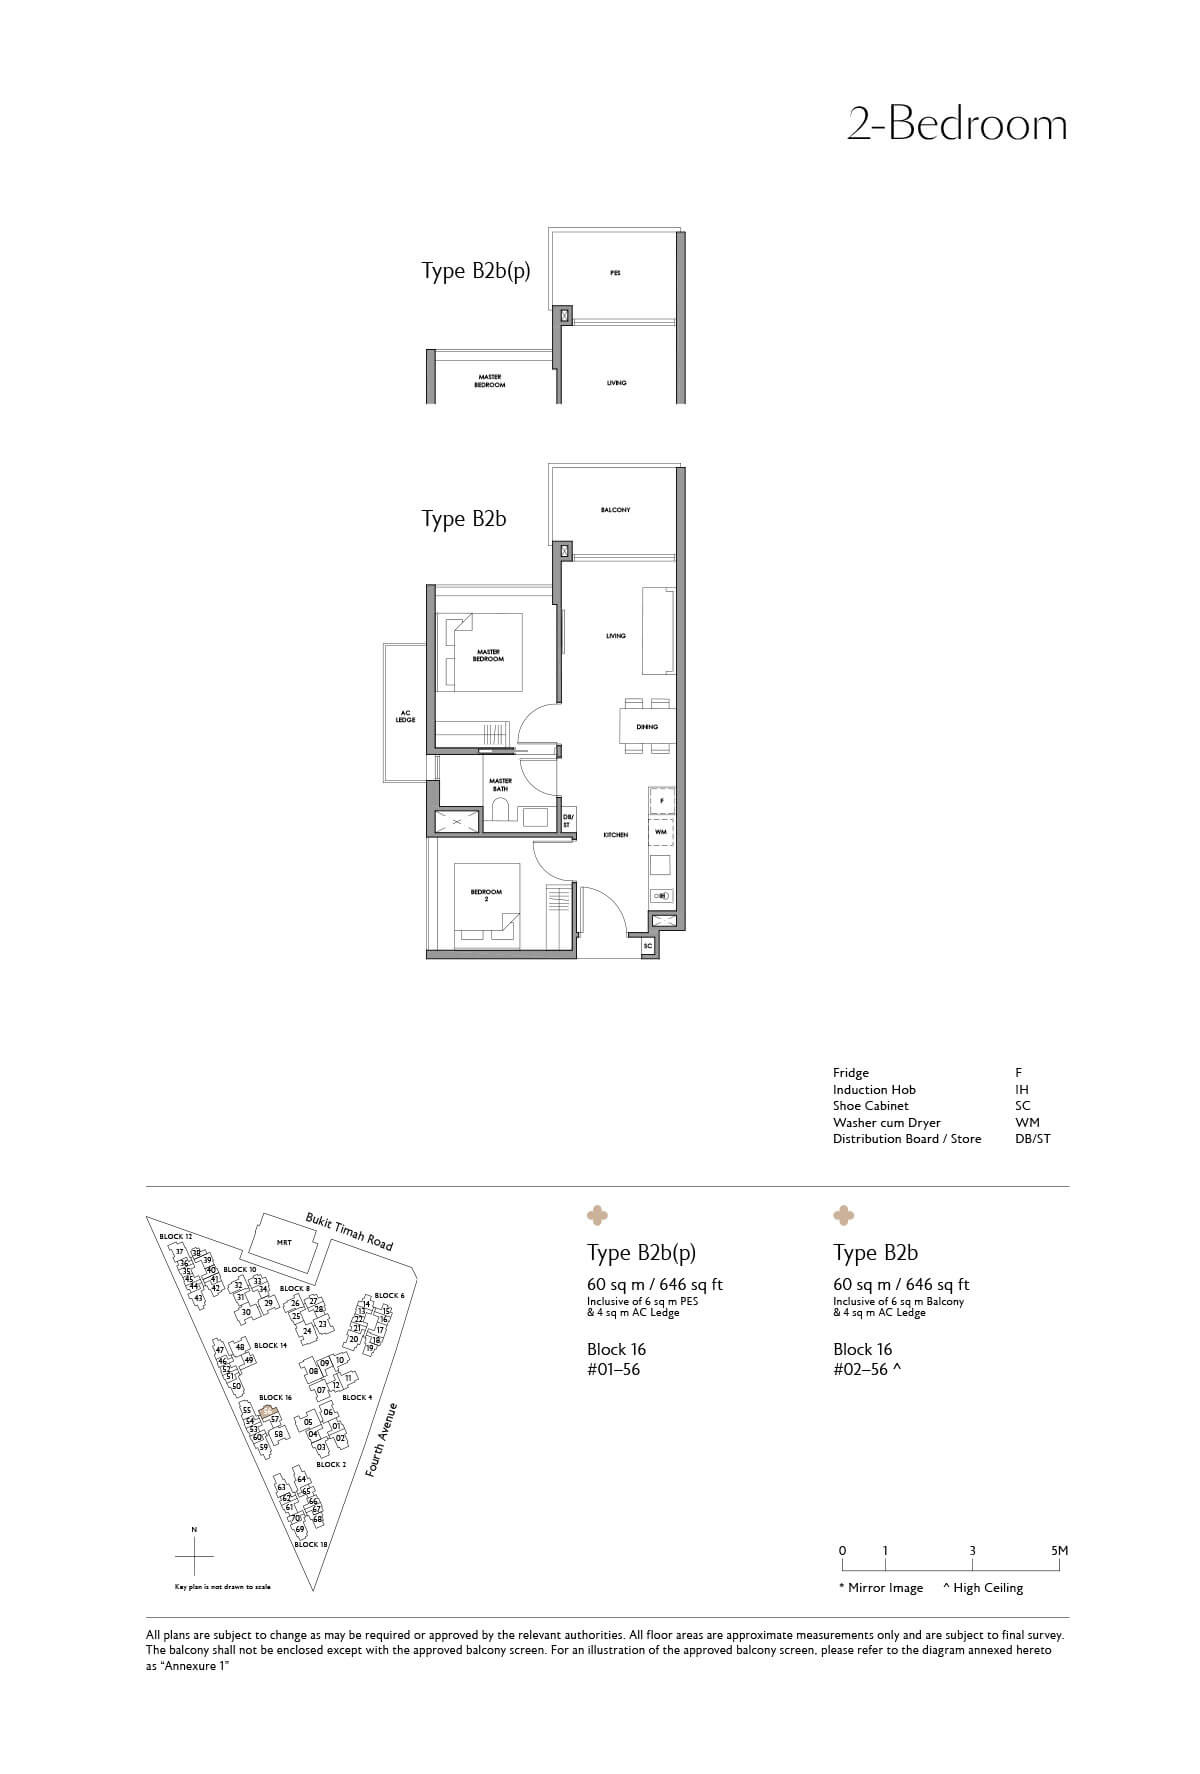 Fourth Avenue Residences Floor Plan 2 Bedroom Type B2b